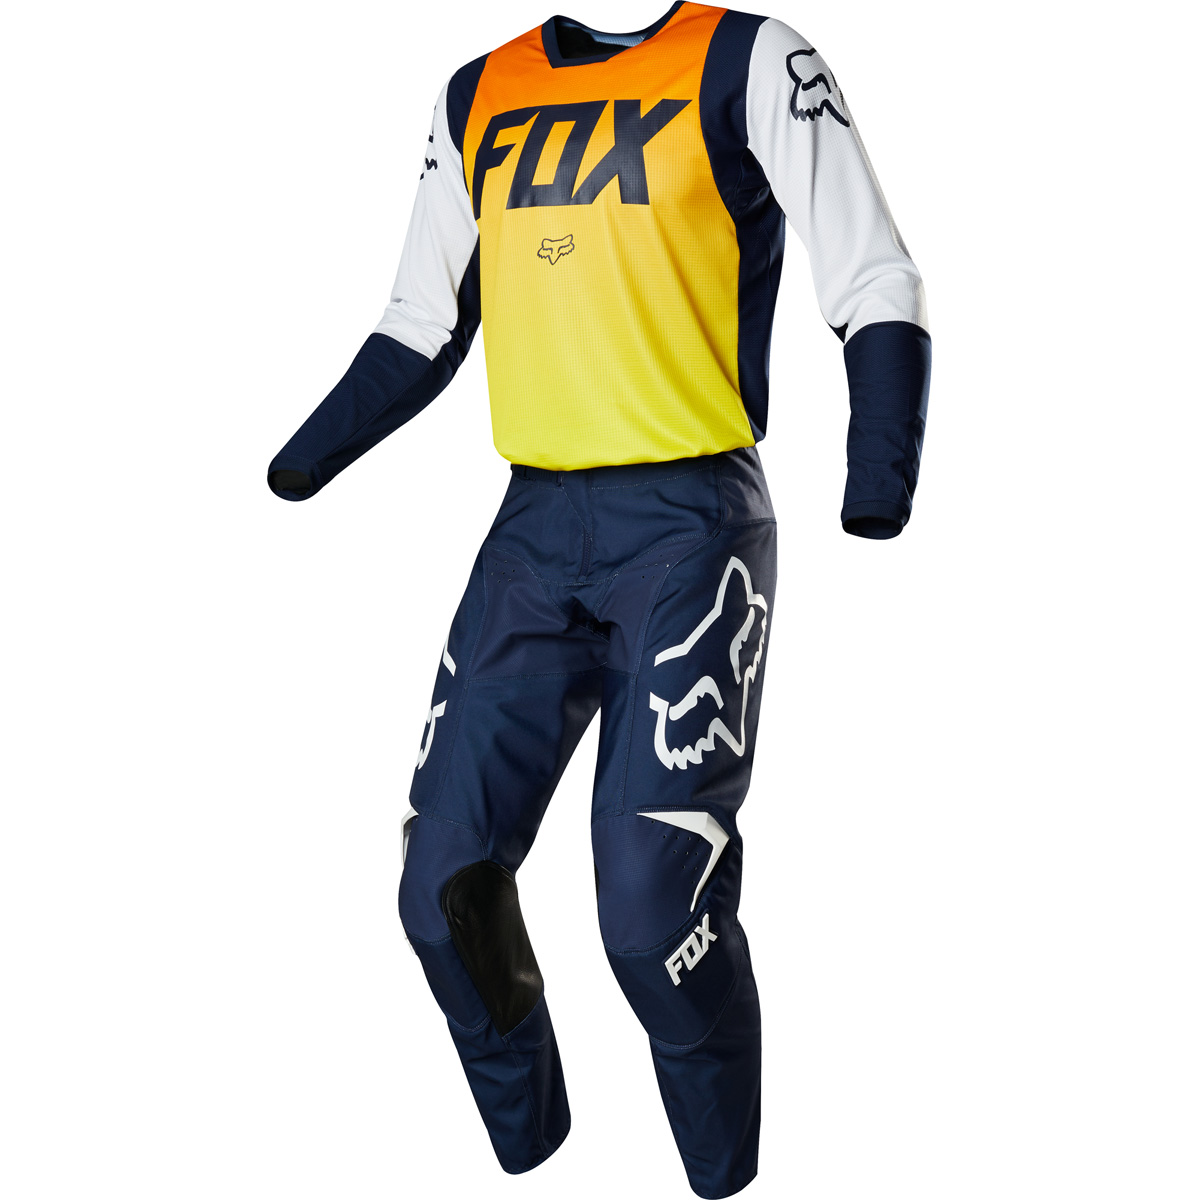 Fox Racing 180 Idol Limited Edition Gear Kit Multiple Sixstar Racing